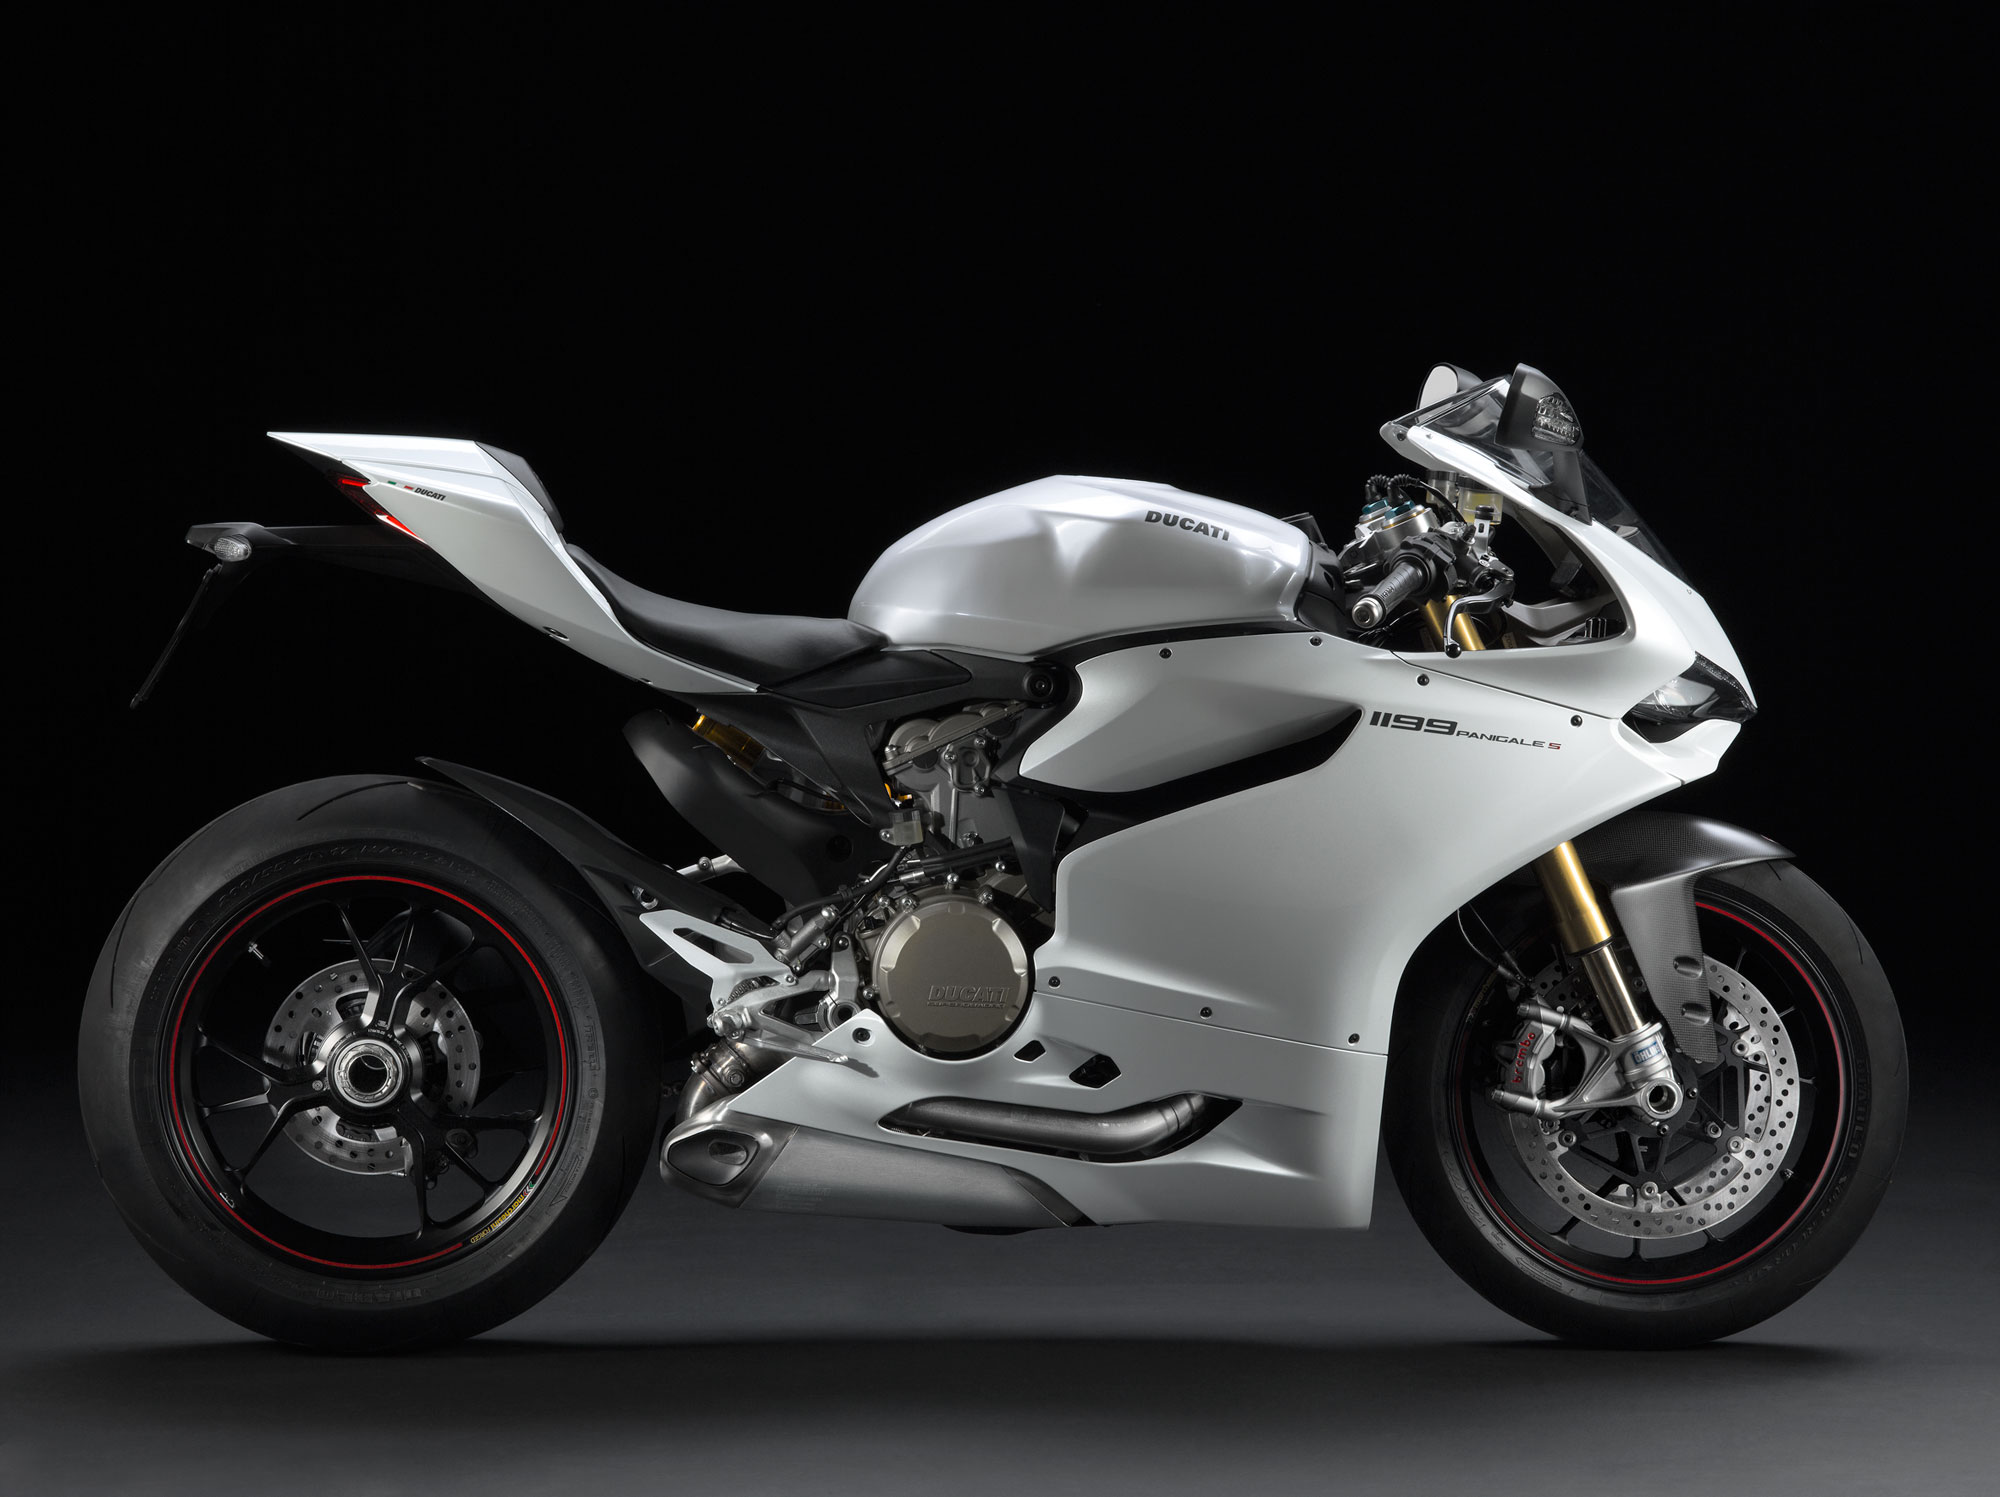 2013 Ducati Superbike 1199 Panigale S Review